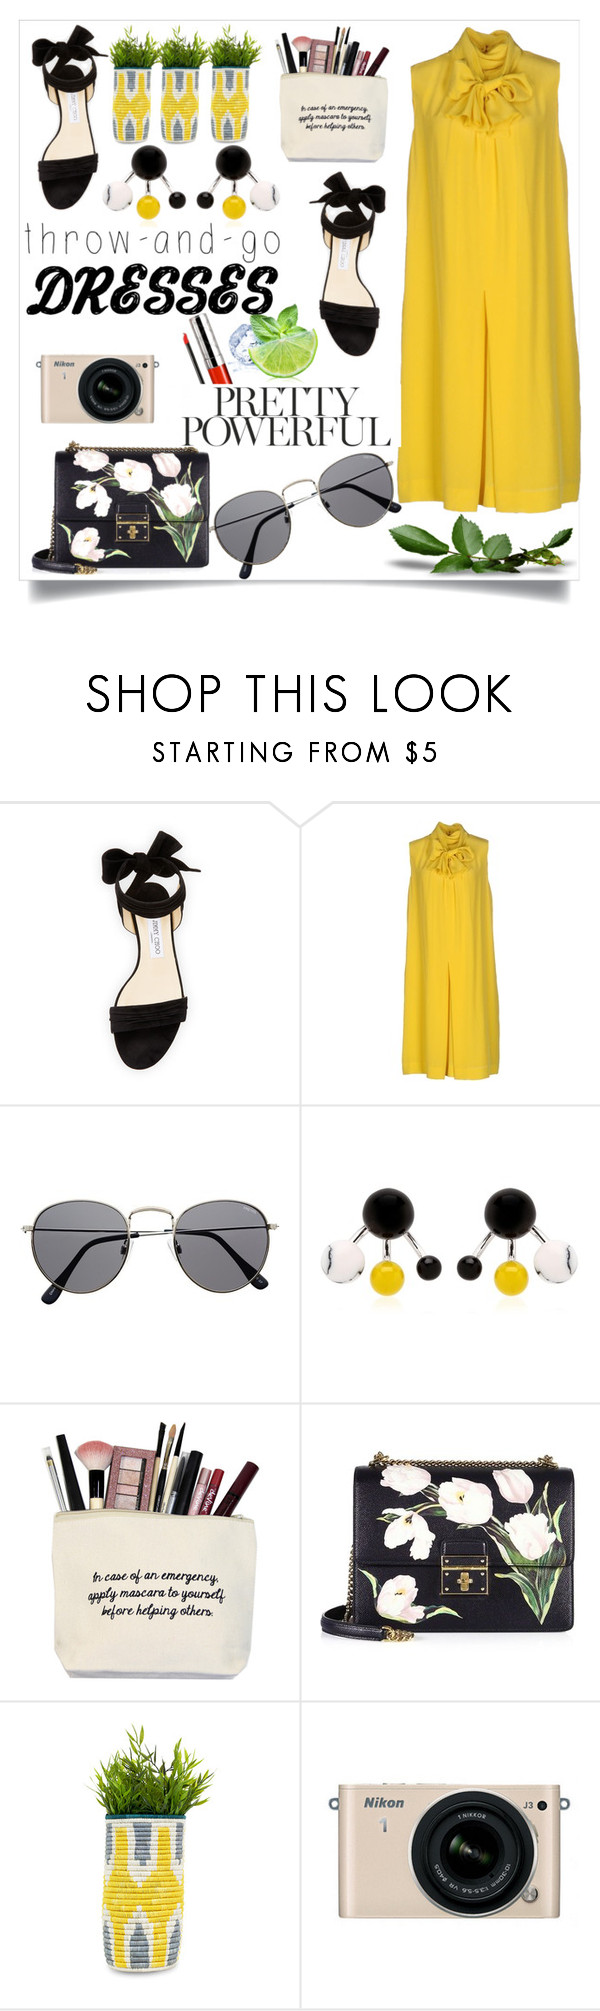 """Easy Peasy!!"" by poorvashikalra ❤ liked on Polyvore featuring Jimmy Choo, Chloé, Eshvi, Dolce&Gabbana, Nikon and By Terry"